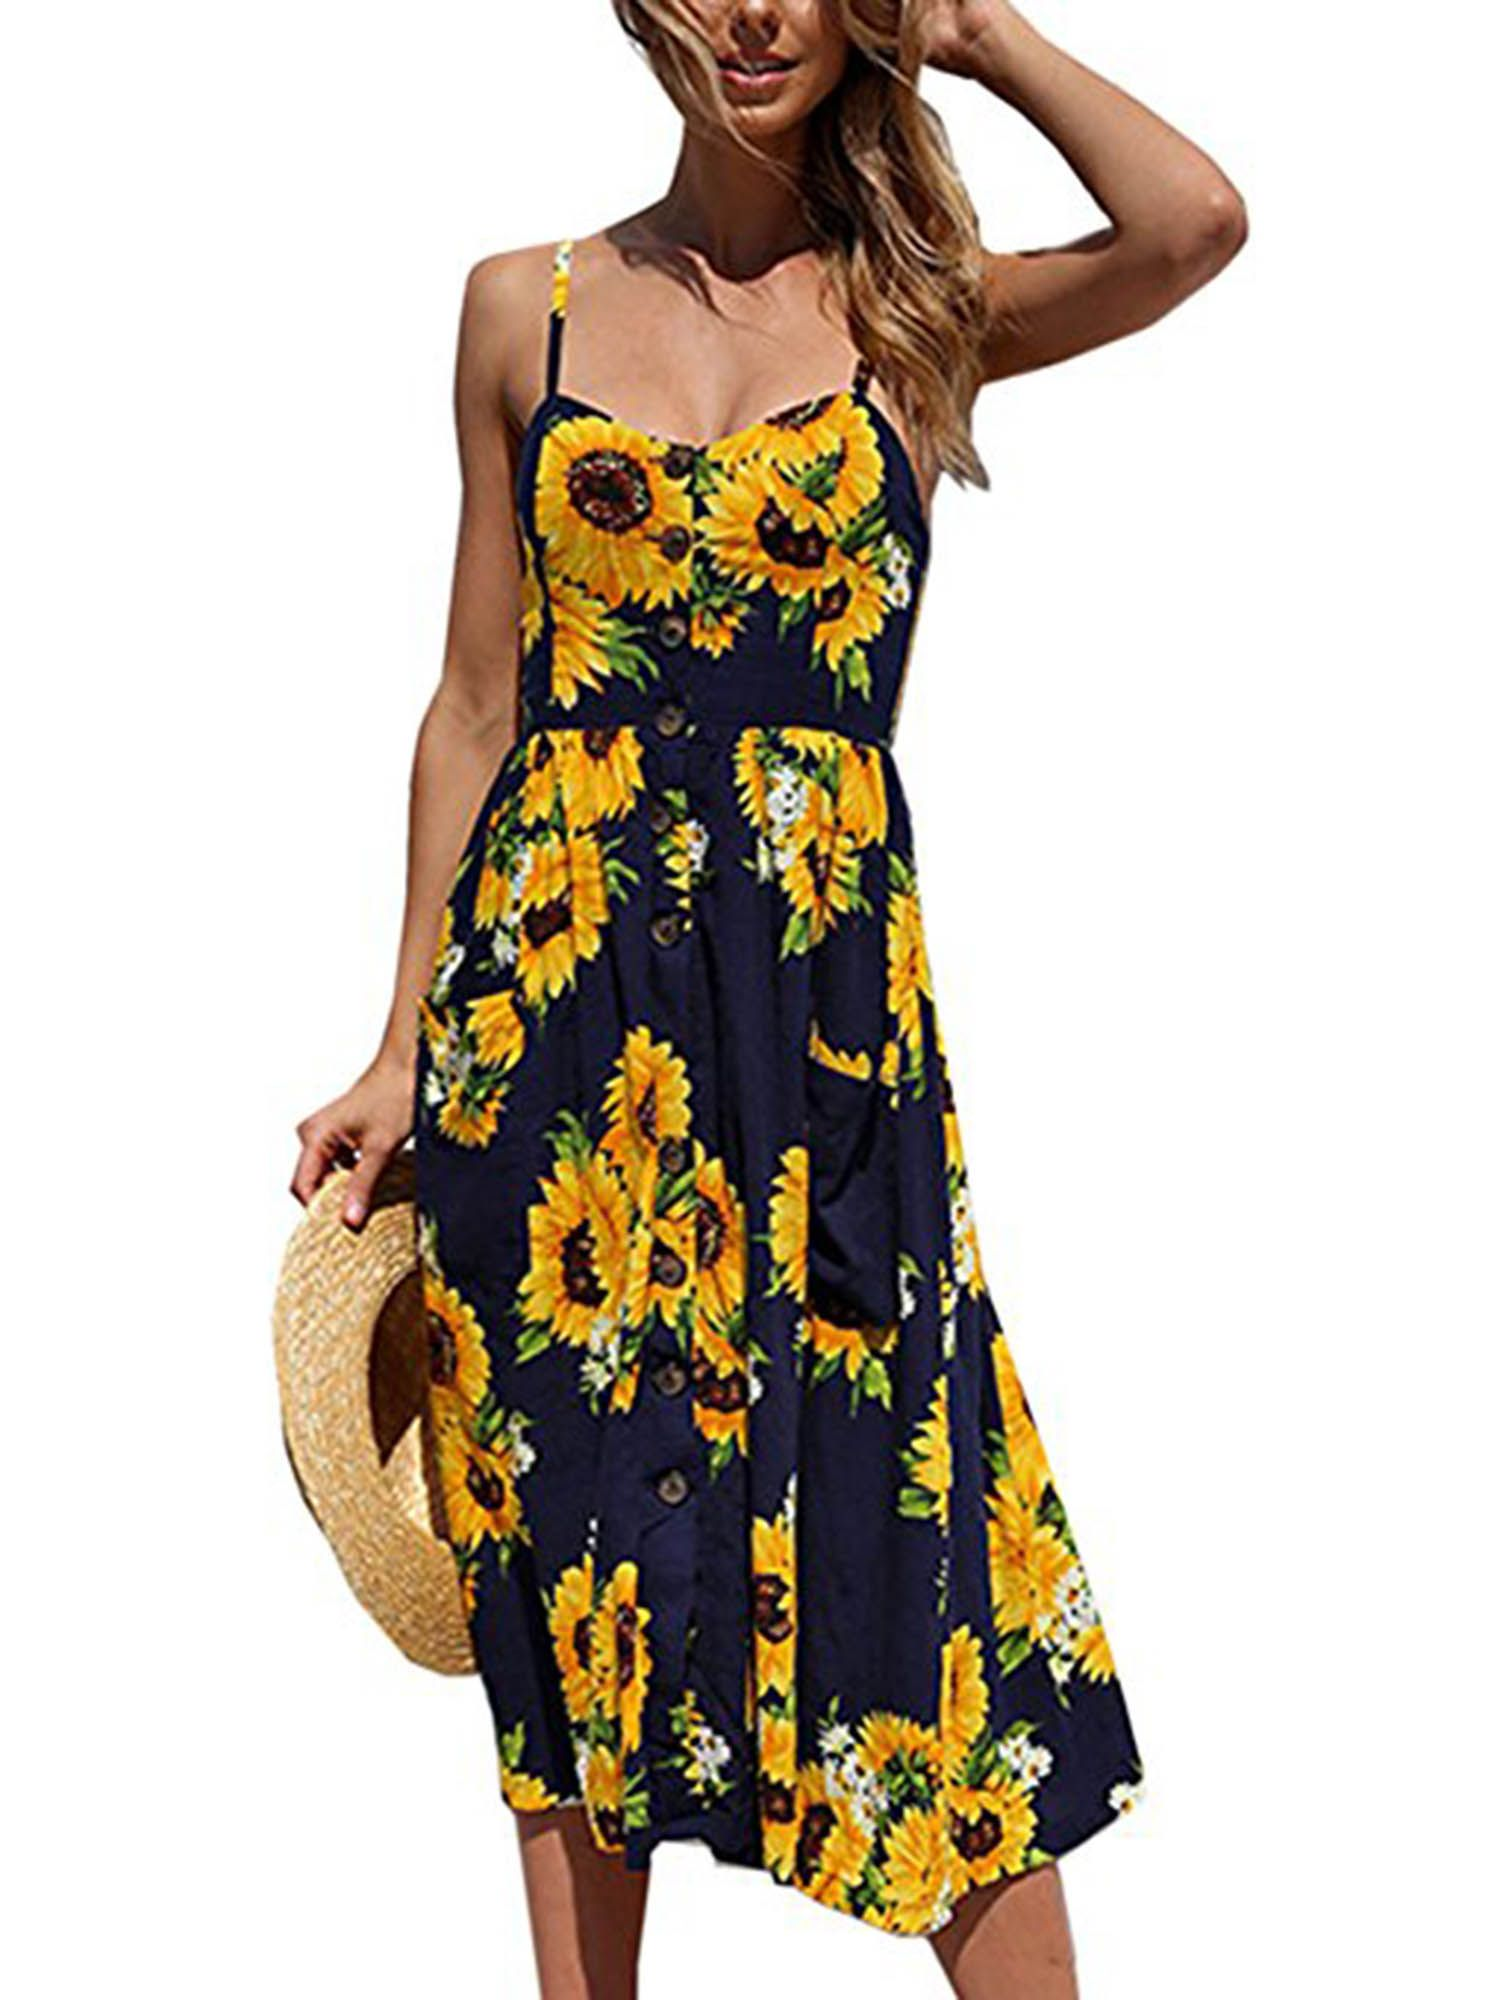 Topcobe Sides Slipt Up Summer Beach Boho Dresses For Women Evening Party Cocktail Long Maxi Dr Casual Summer Dresses Summer Dresses For Women Midi Swing Dress [ 2000 x 1500 Pixel ]